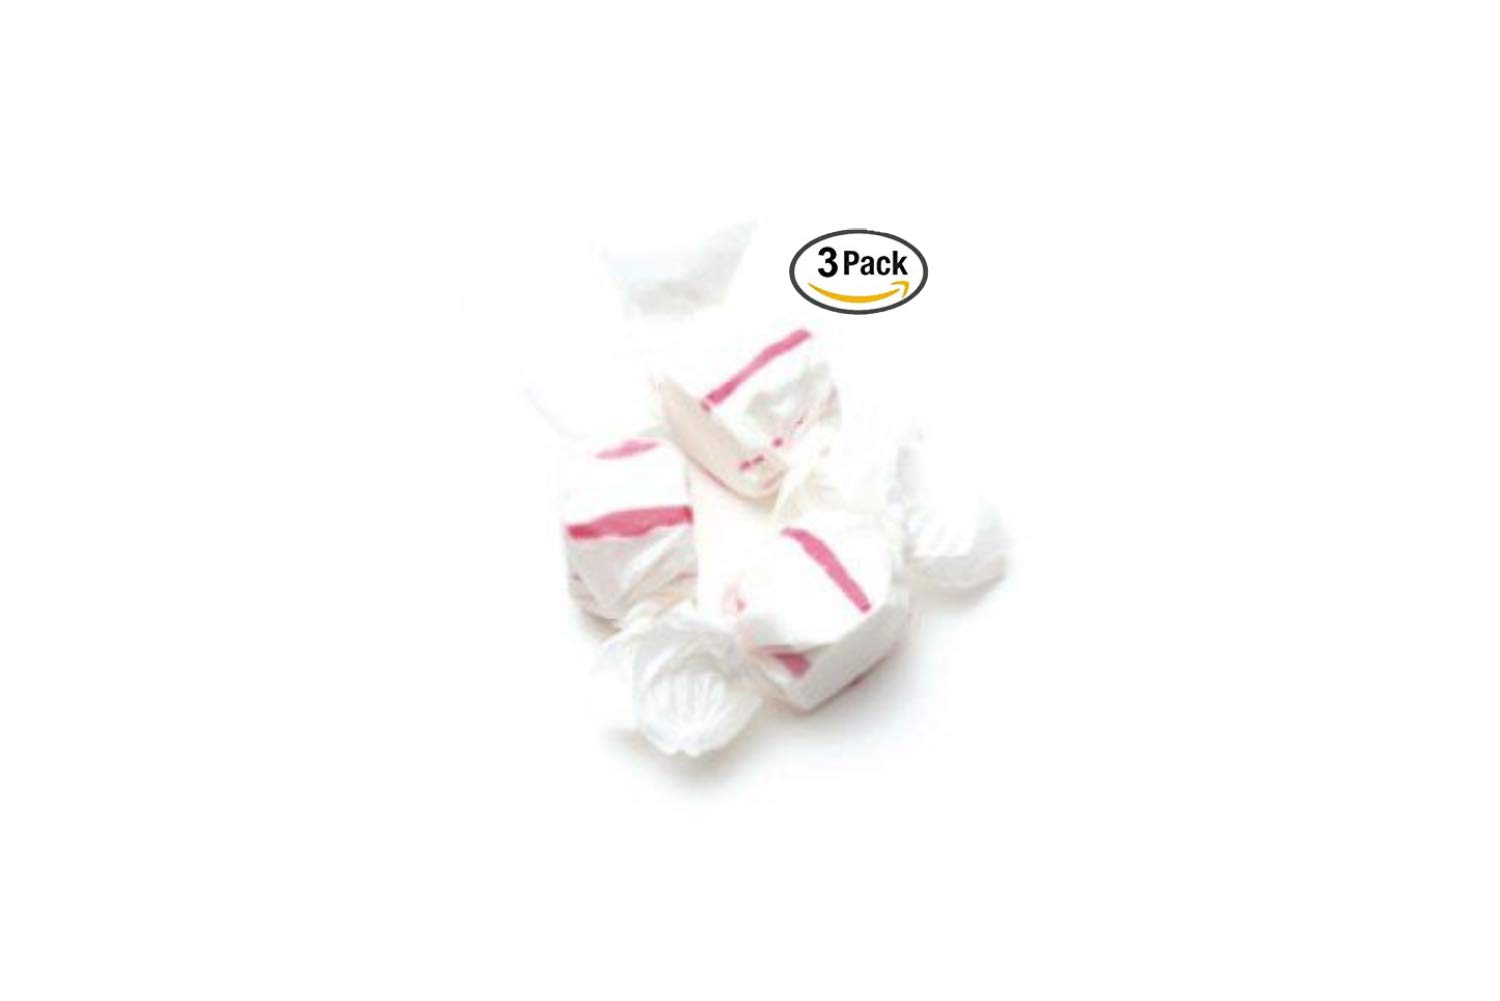 Red & White Peppermint Salt Water Taffy 48 Ounces by Sweets (3 Pack)